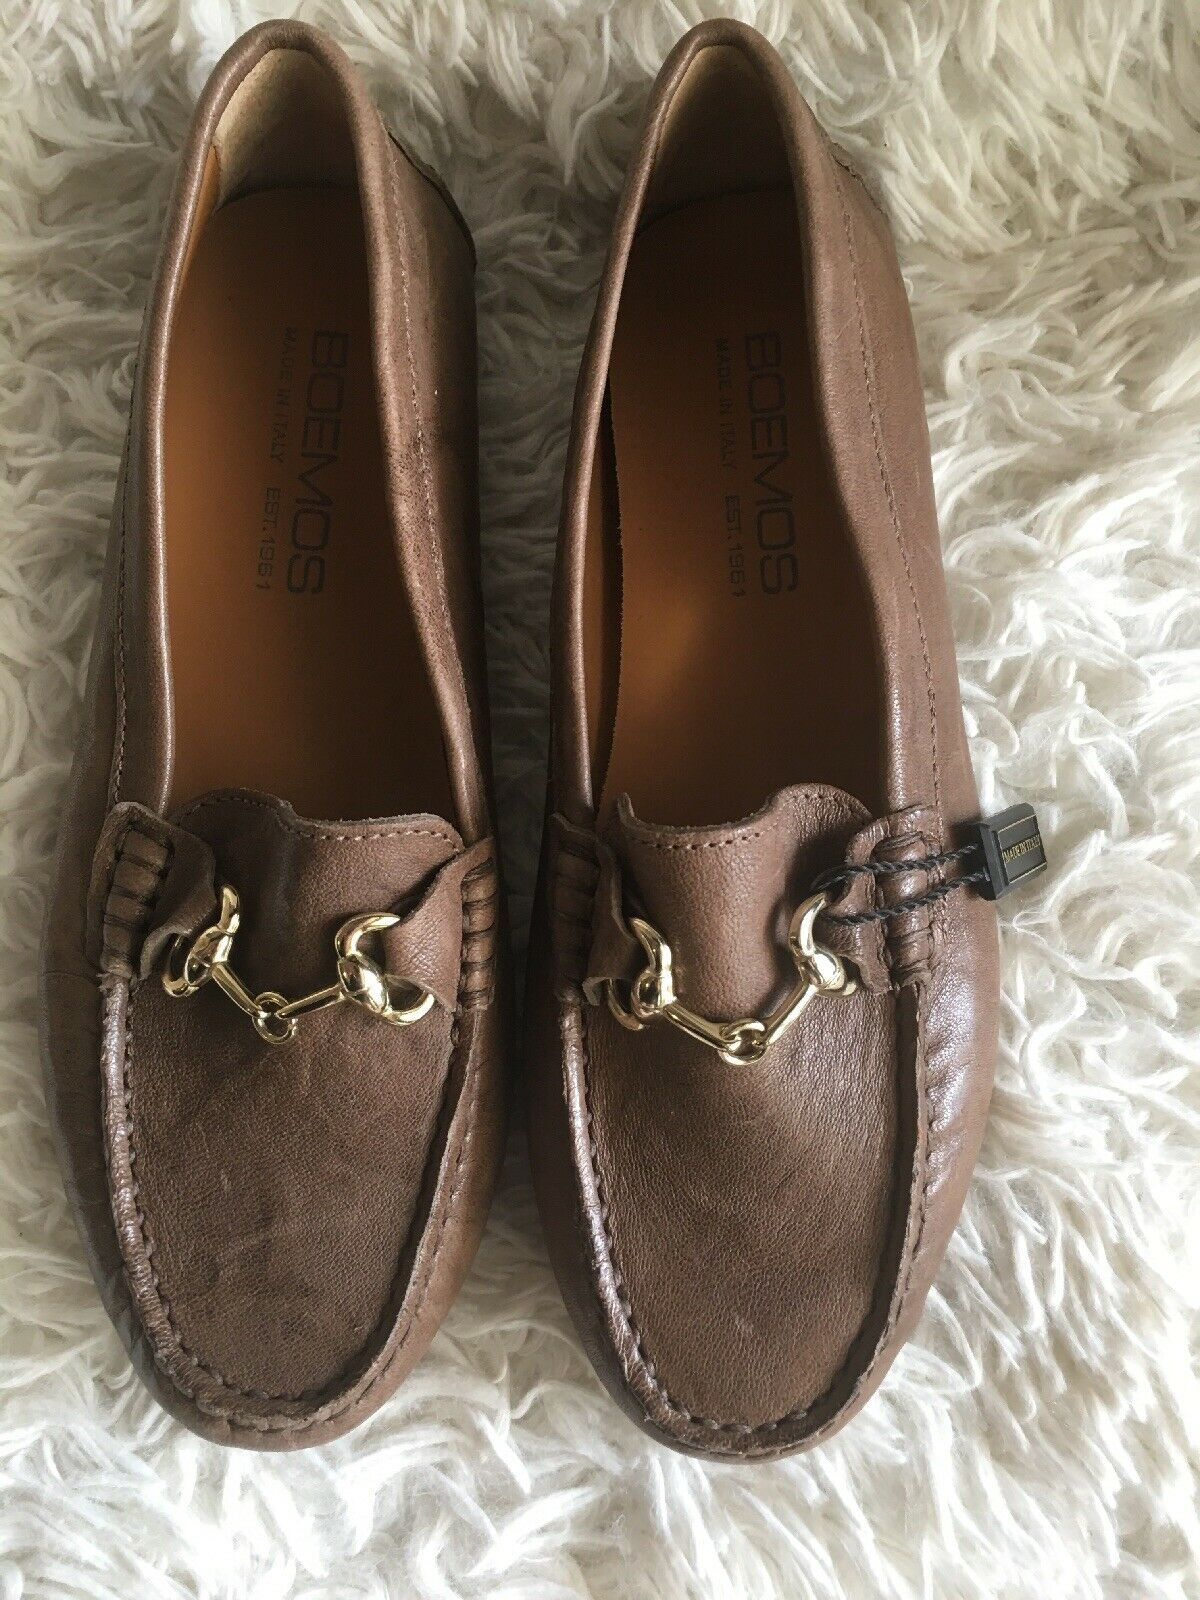 Boemos leather Loafers Driving Moccasins BROWN Made in  SZ 37